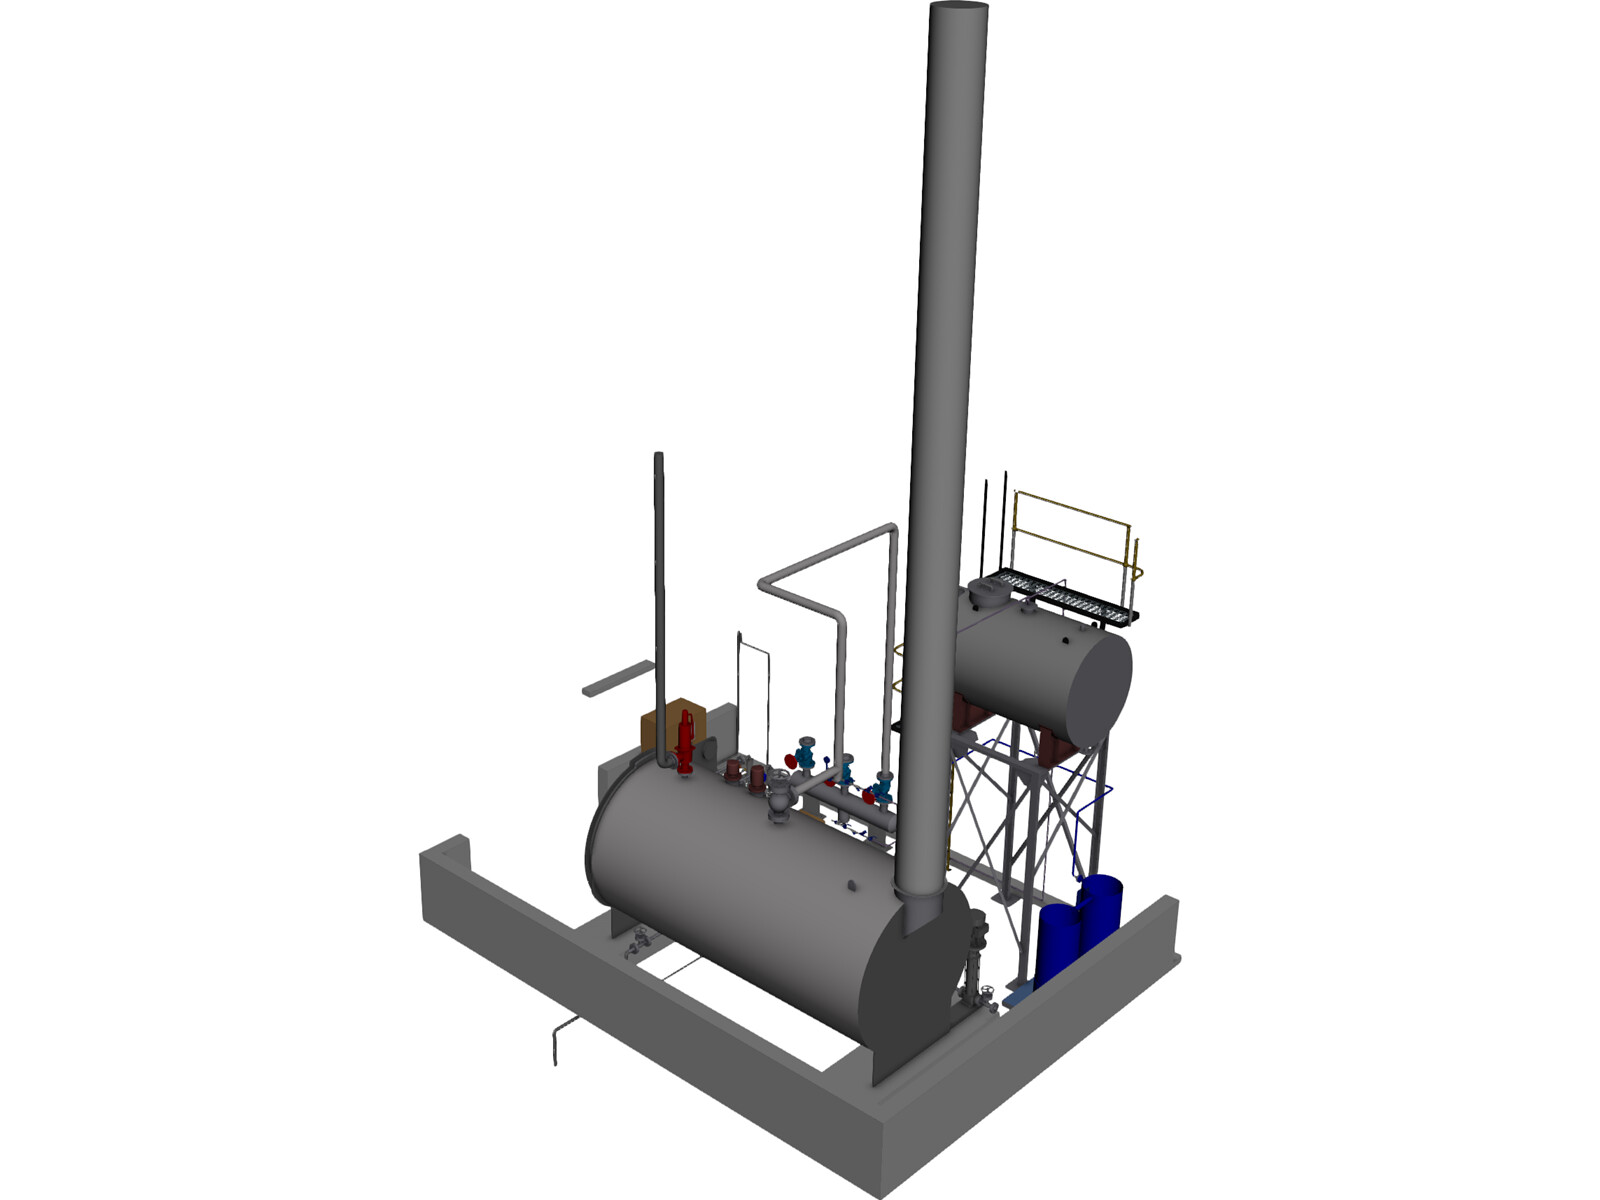 Boiler House Layout 3D CAD Model - 3D CAD Browser